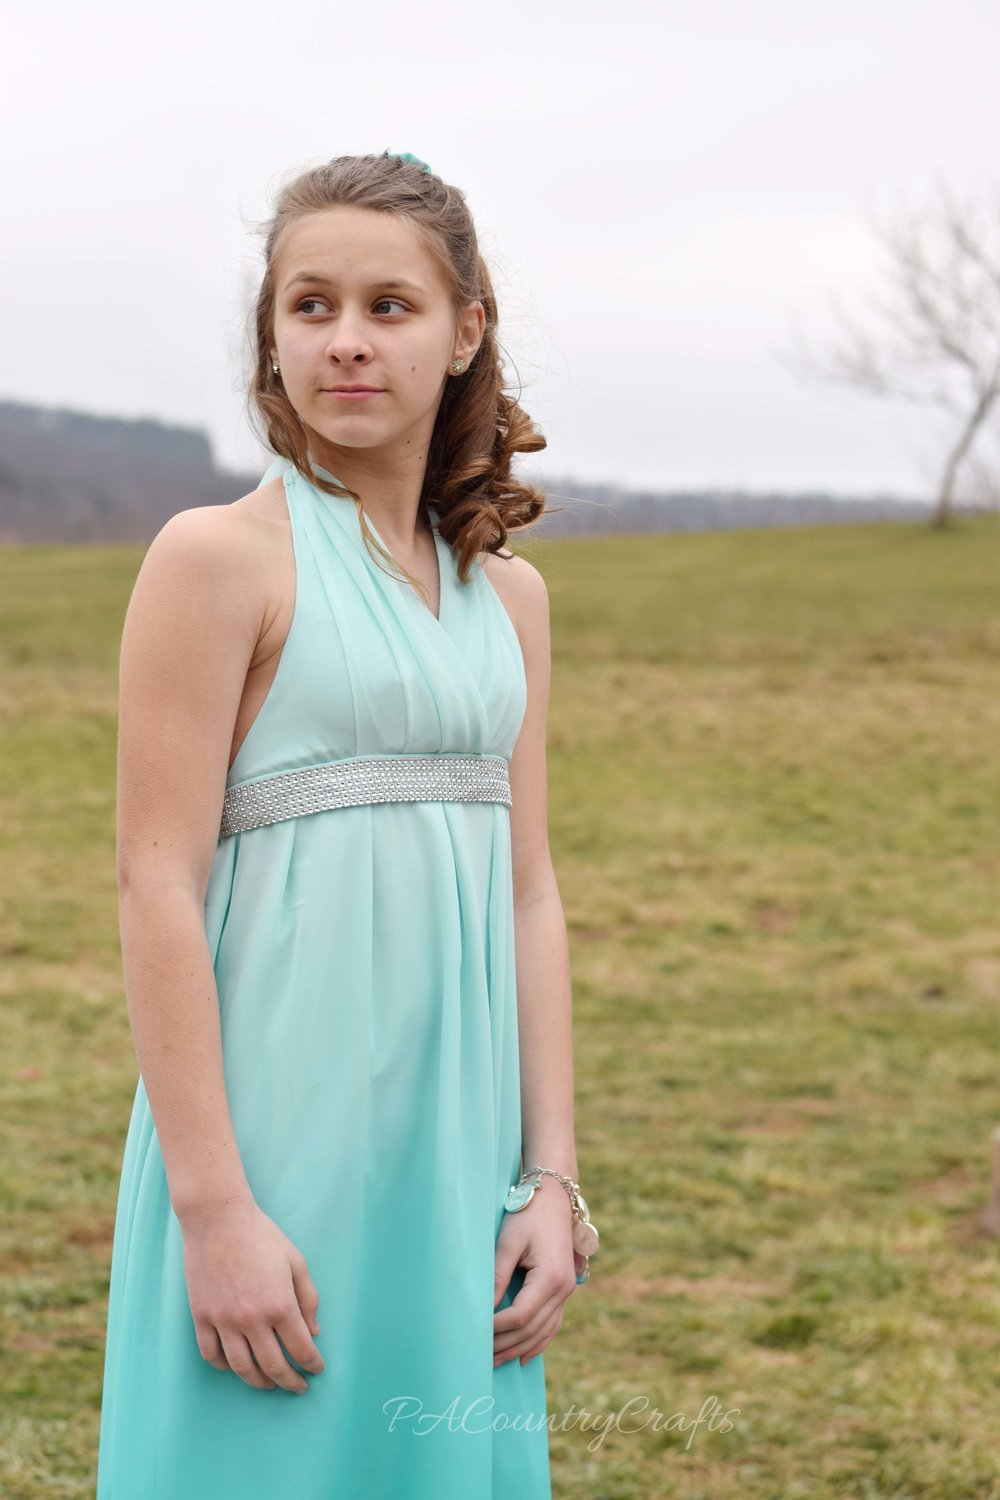 The Last Easter Dress